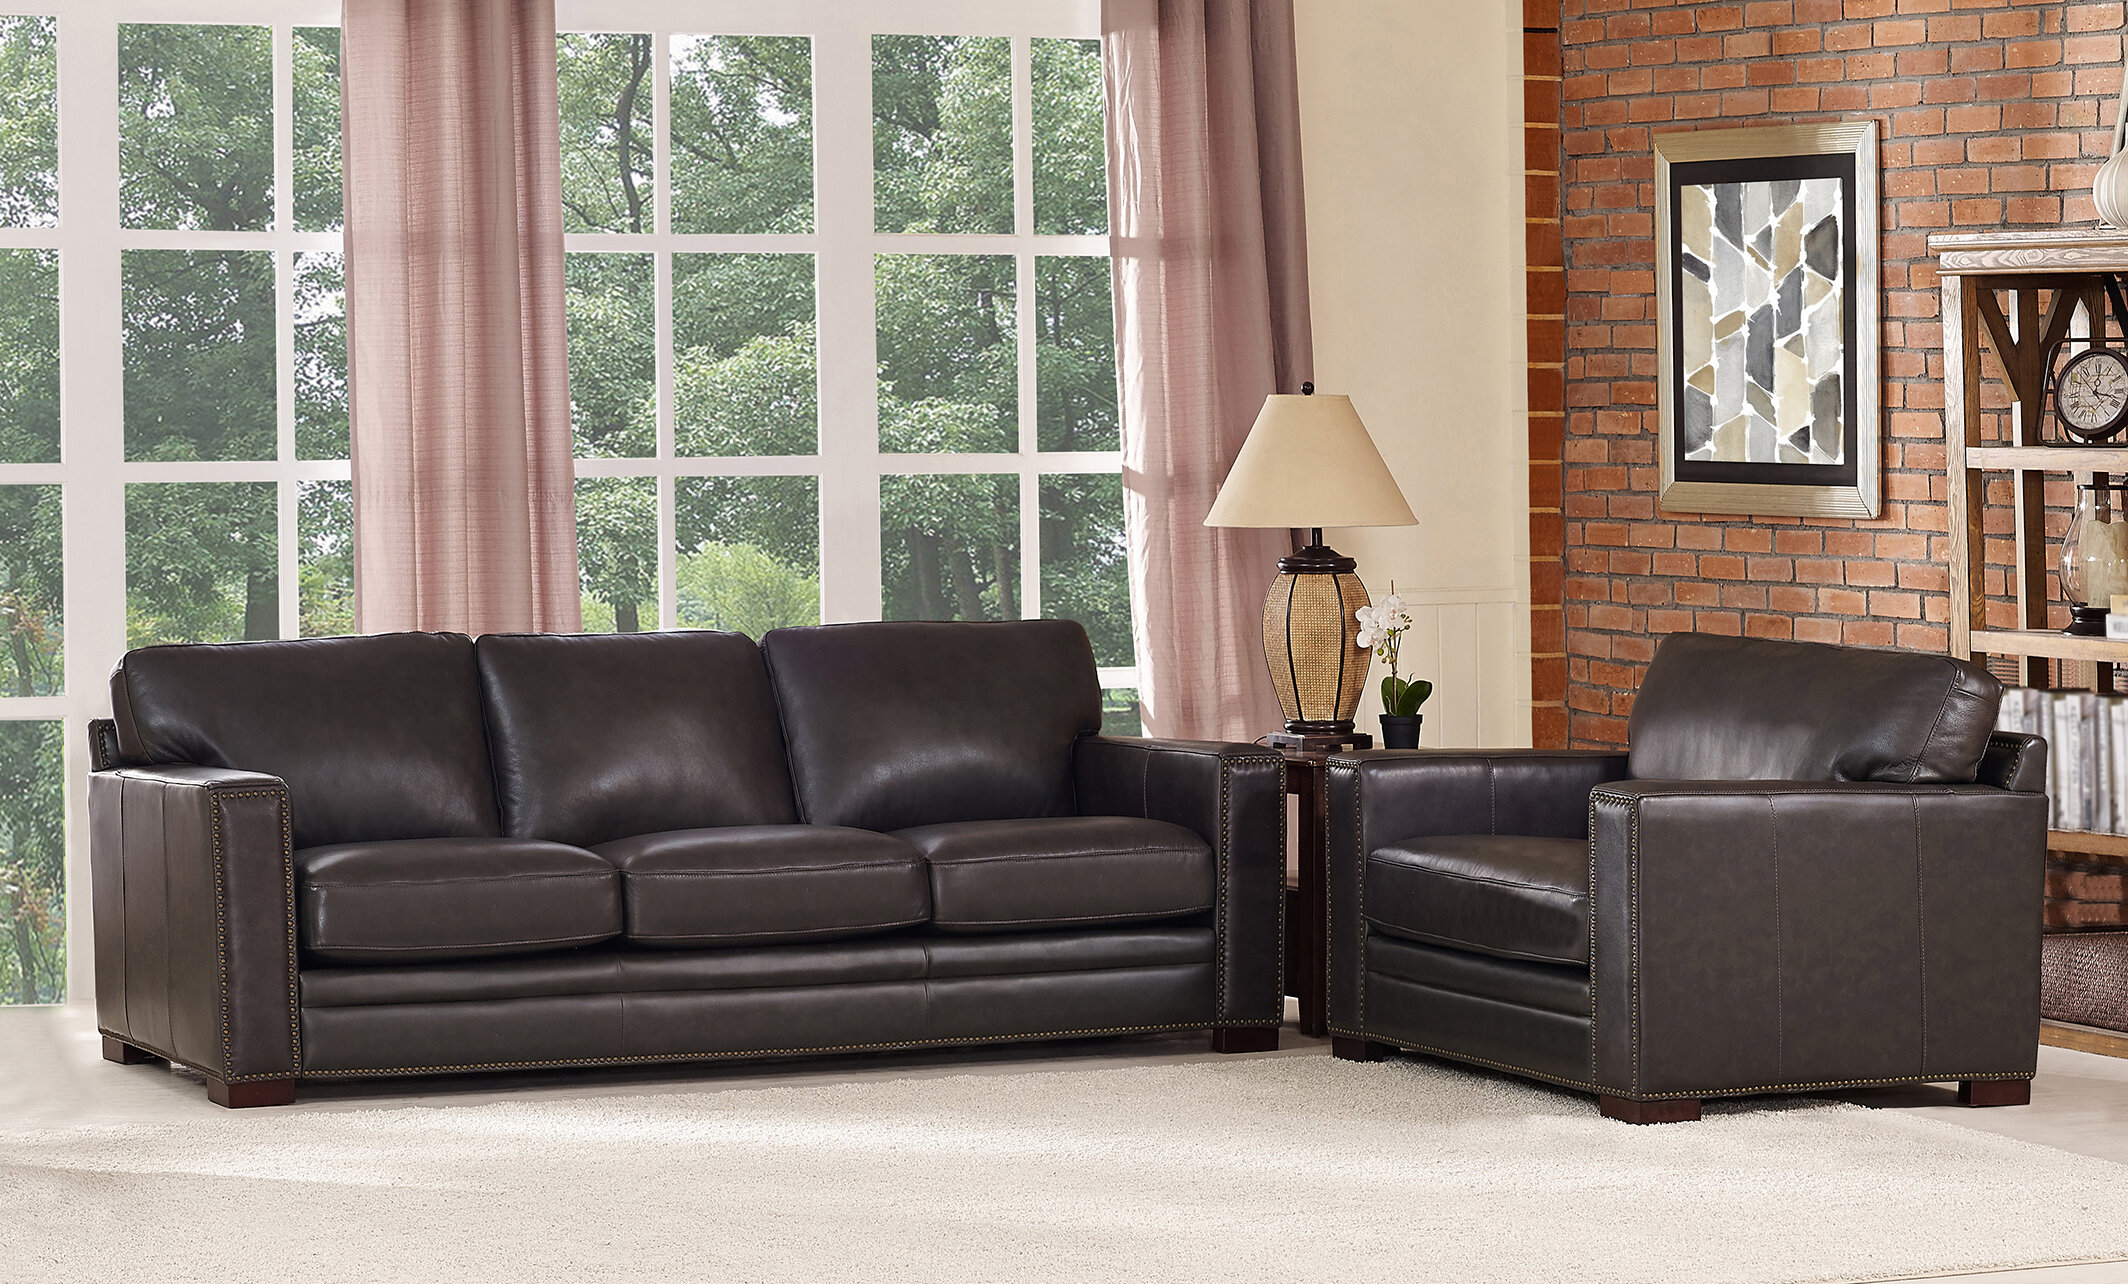 T Austin Design Neil Traditional Leather 2 Piece Living Room Set Wayfair